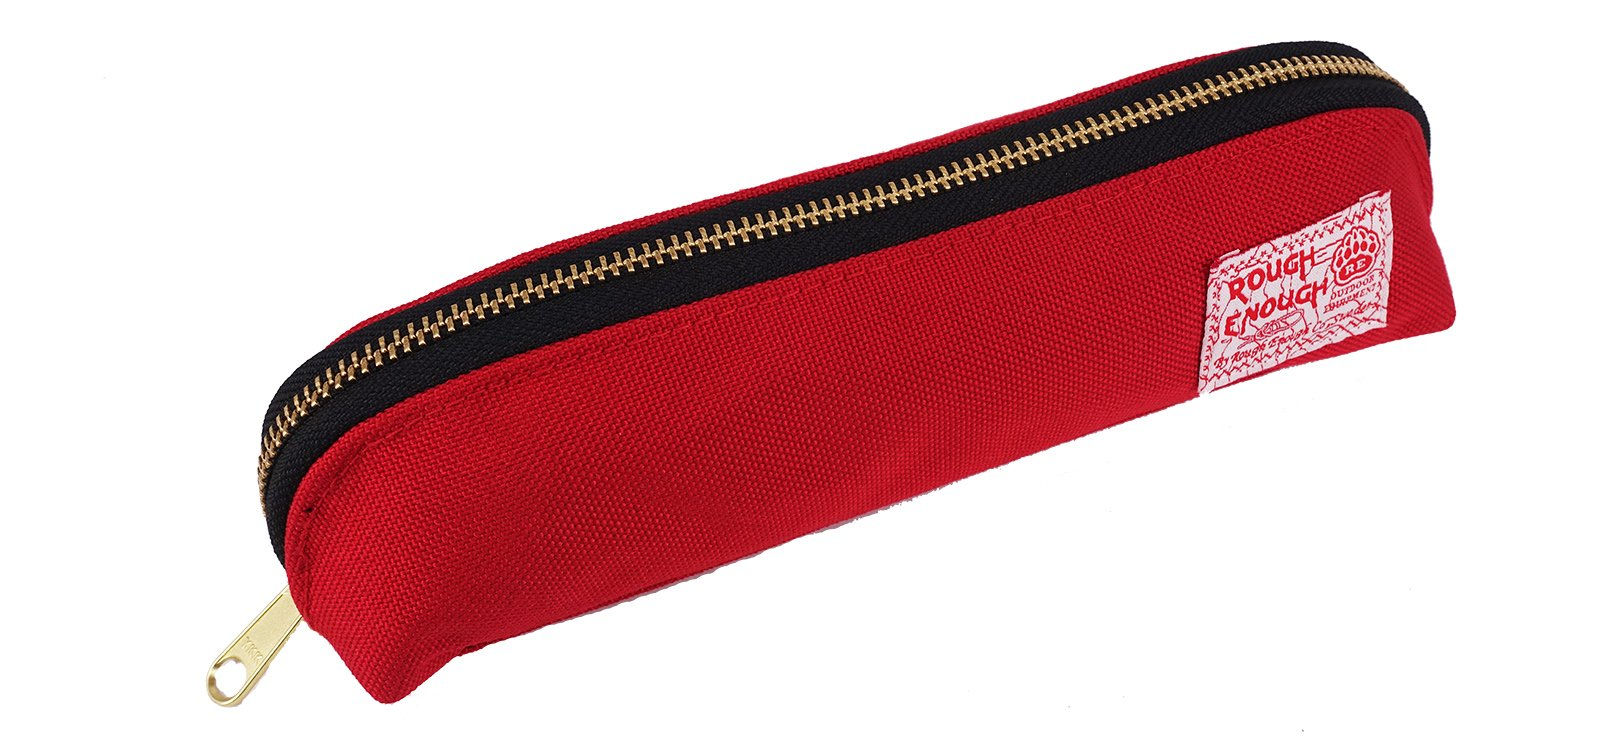 Rough Enough Multi-purpose CORDURA Polyester Long Slim Classic Portable Pencil Case Pouch Holder Organizer with YKK Gold Zipper for Stationary Cosmetics Accessories Kids Girls Students at Schools Red